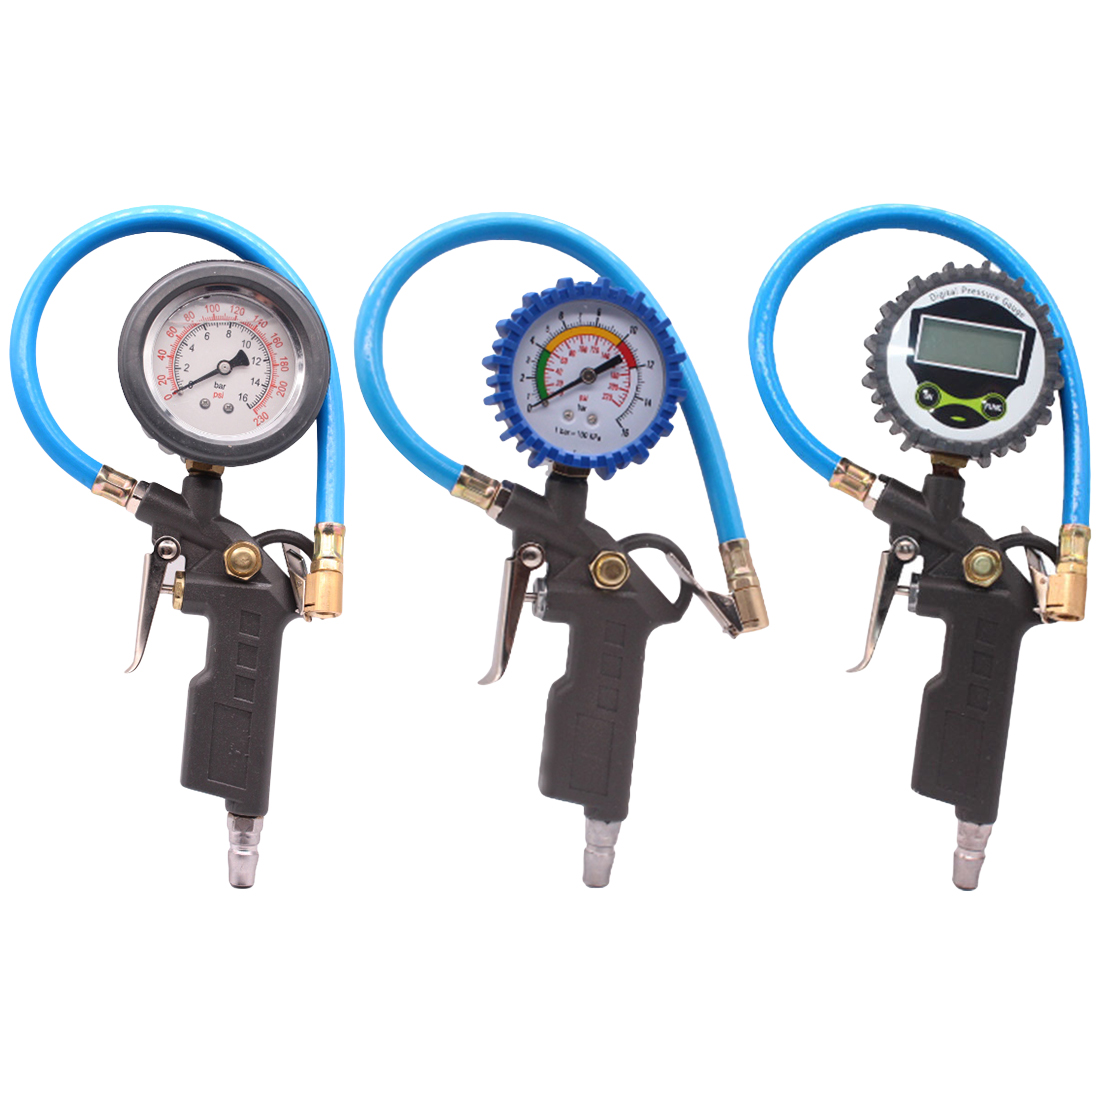 Digital Car Tire Air Pressure Inflator Gauge LCD Display LED Backlight Vehicle Tester Inflation Monitoring